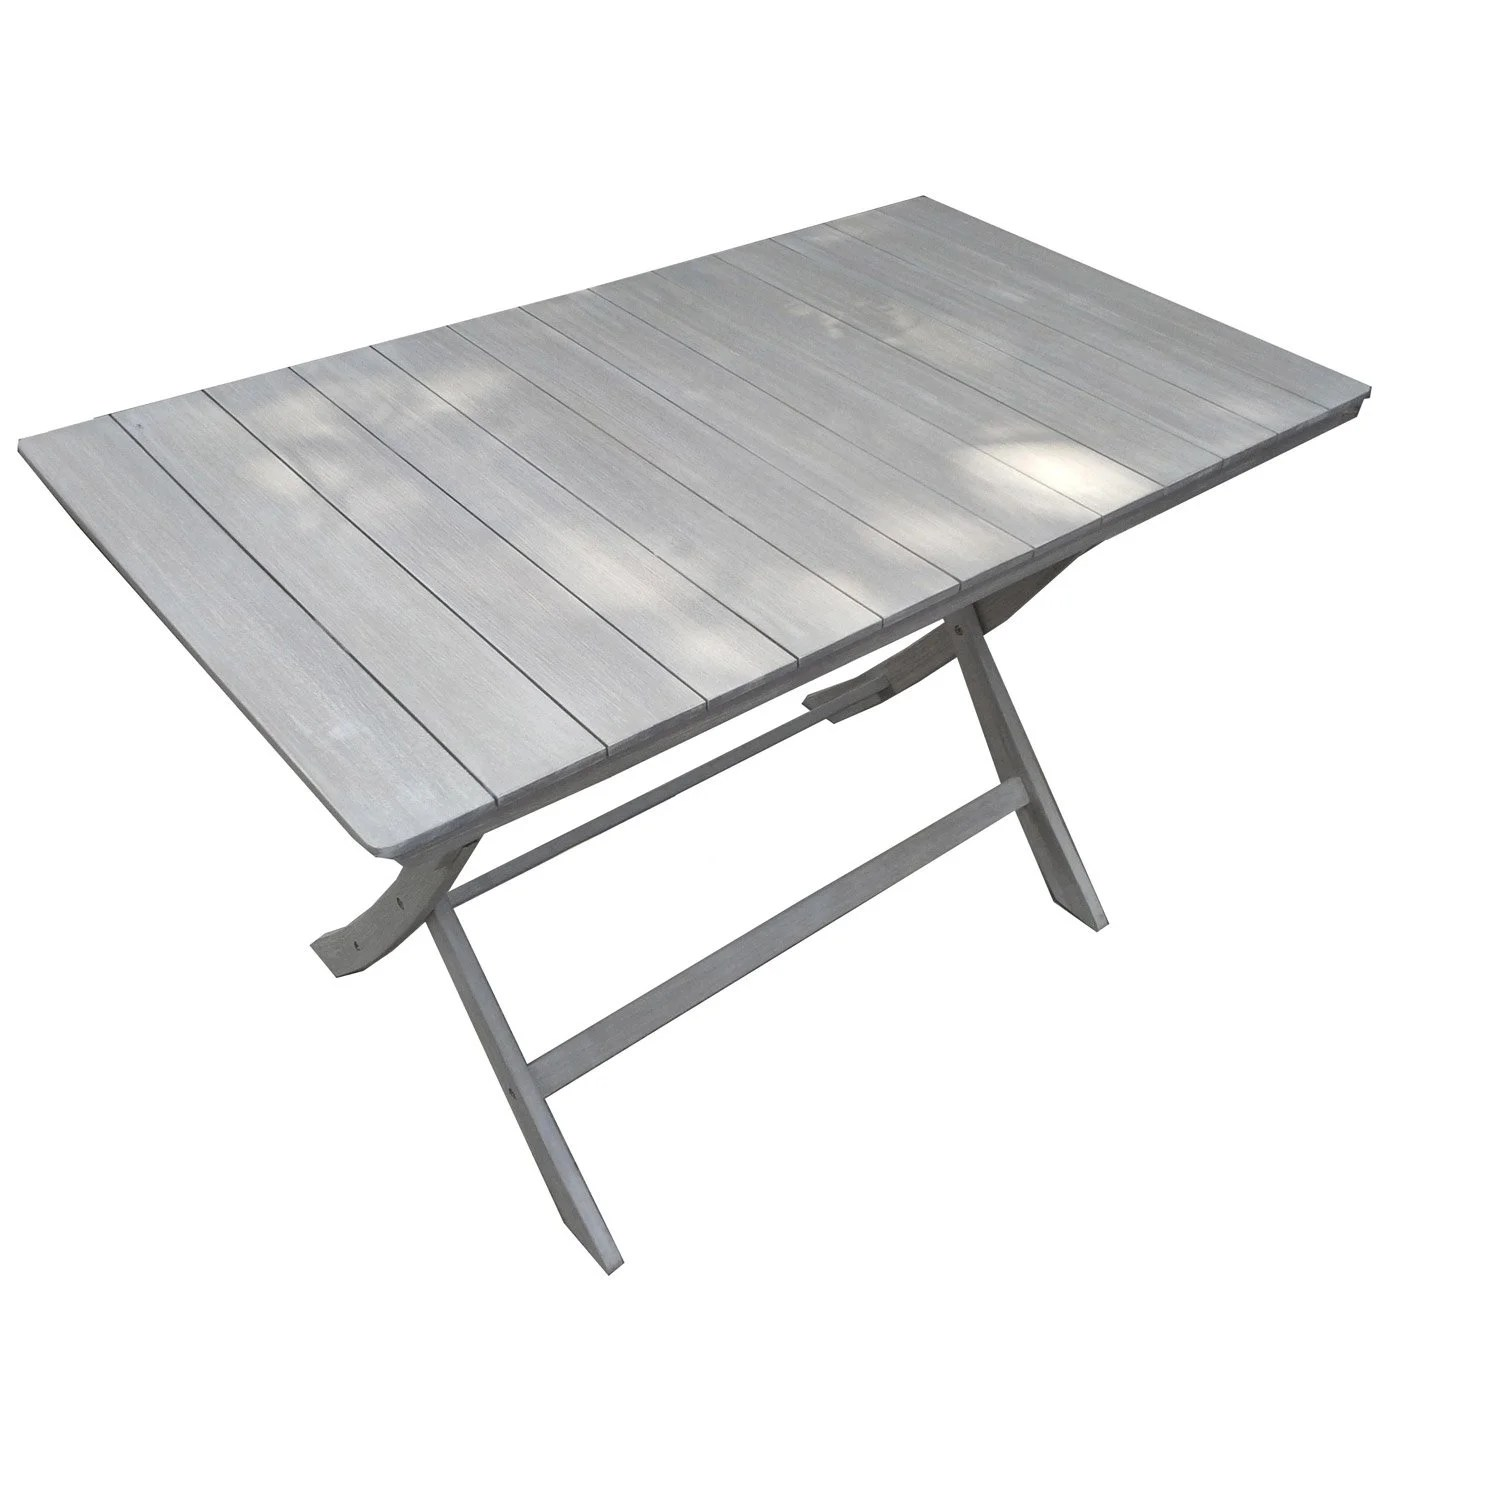 Leroy Merlin Table Exterieur Table De Jardin Naterial Portofino Rectangulaire Gris 4